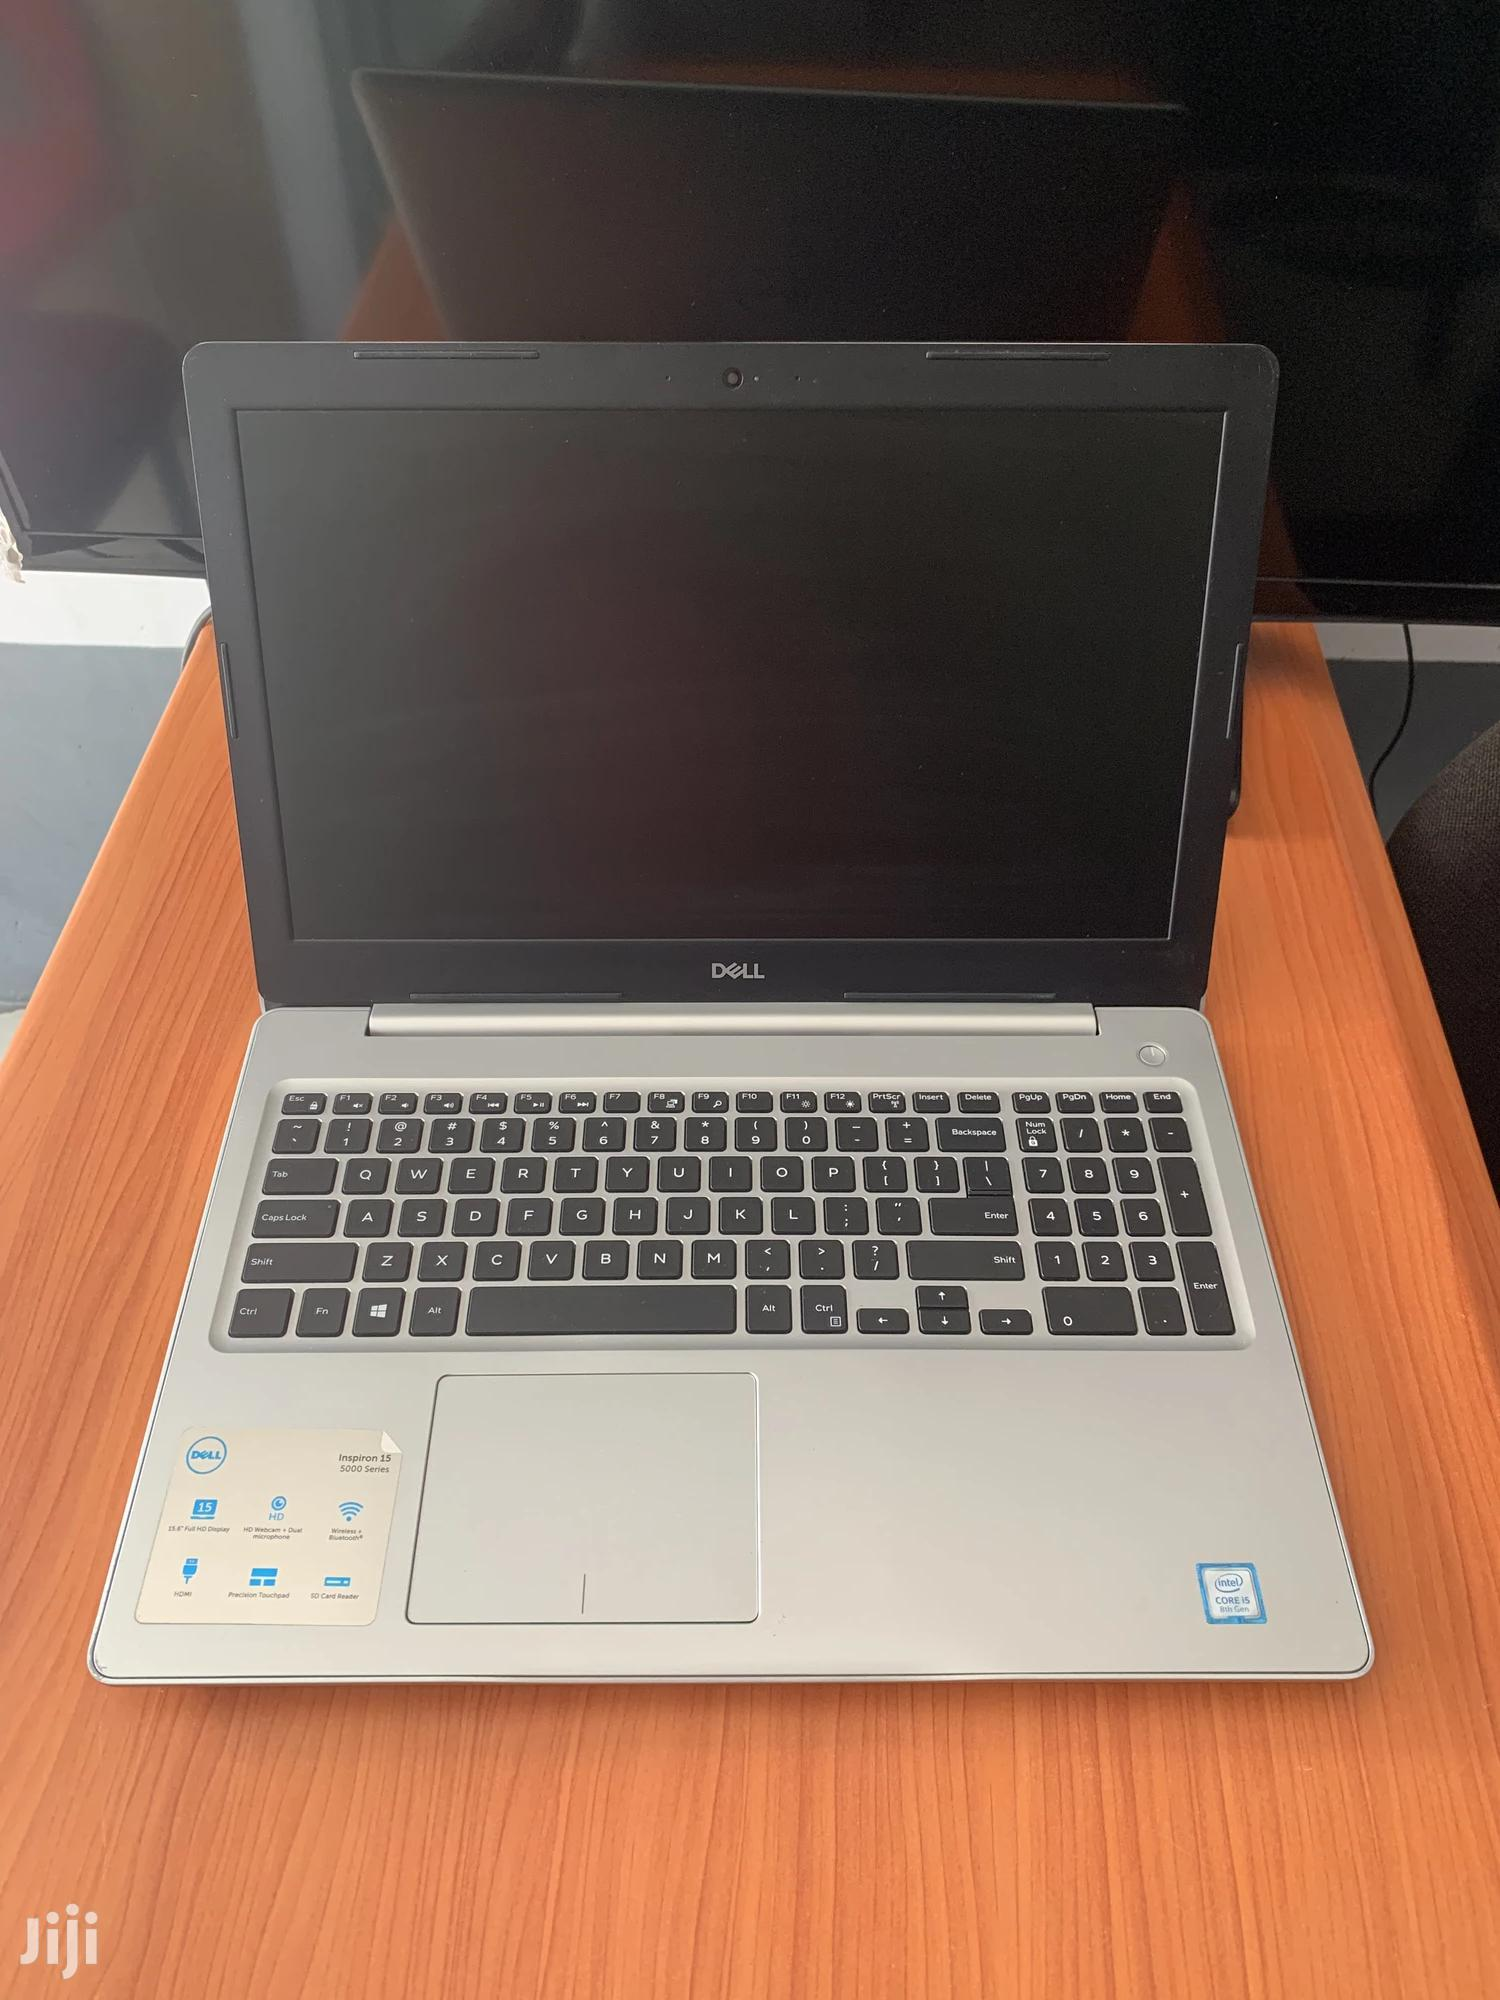 Laptop Dell Inspiron 15 8GB Intel Core I7 HDD 1T | Laptops & Computers for sale in Osu, Greater Accra, Ghana